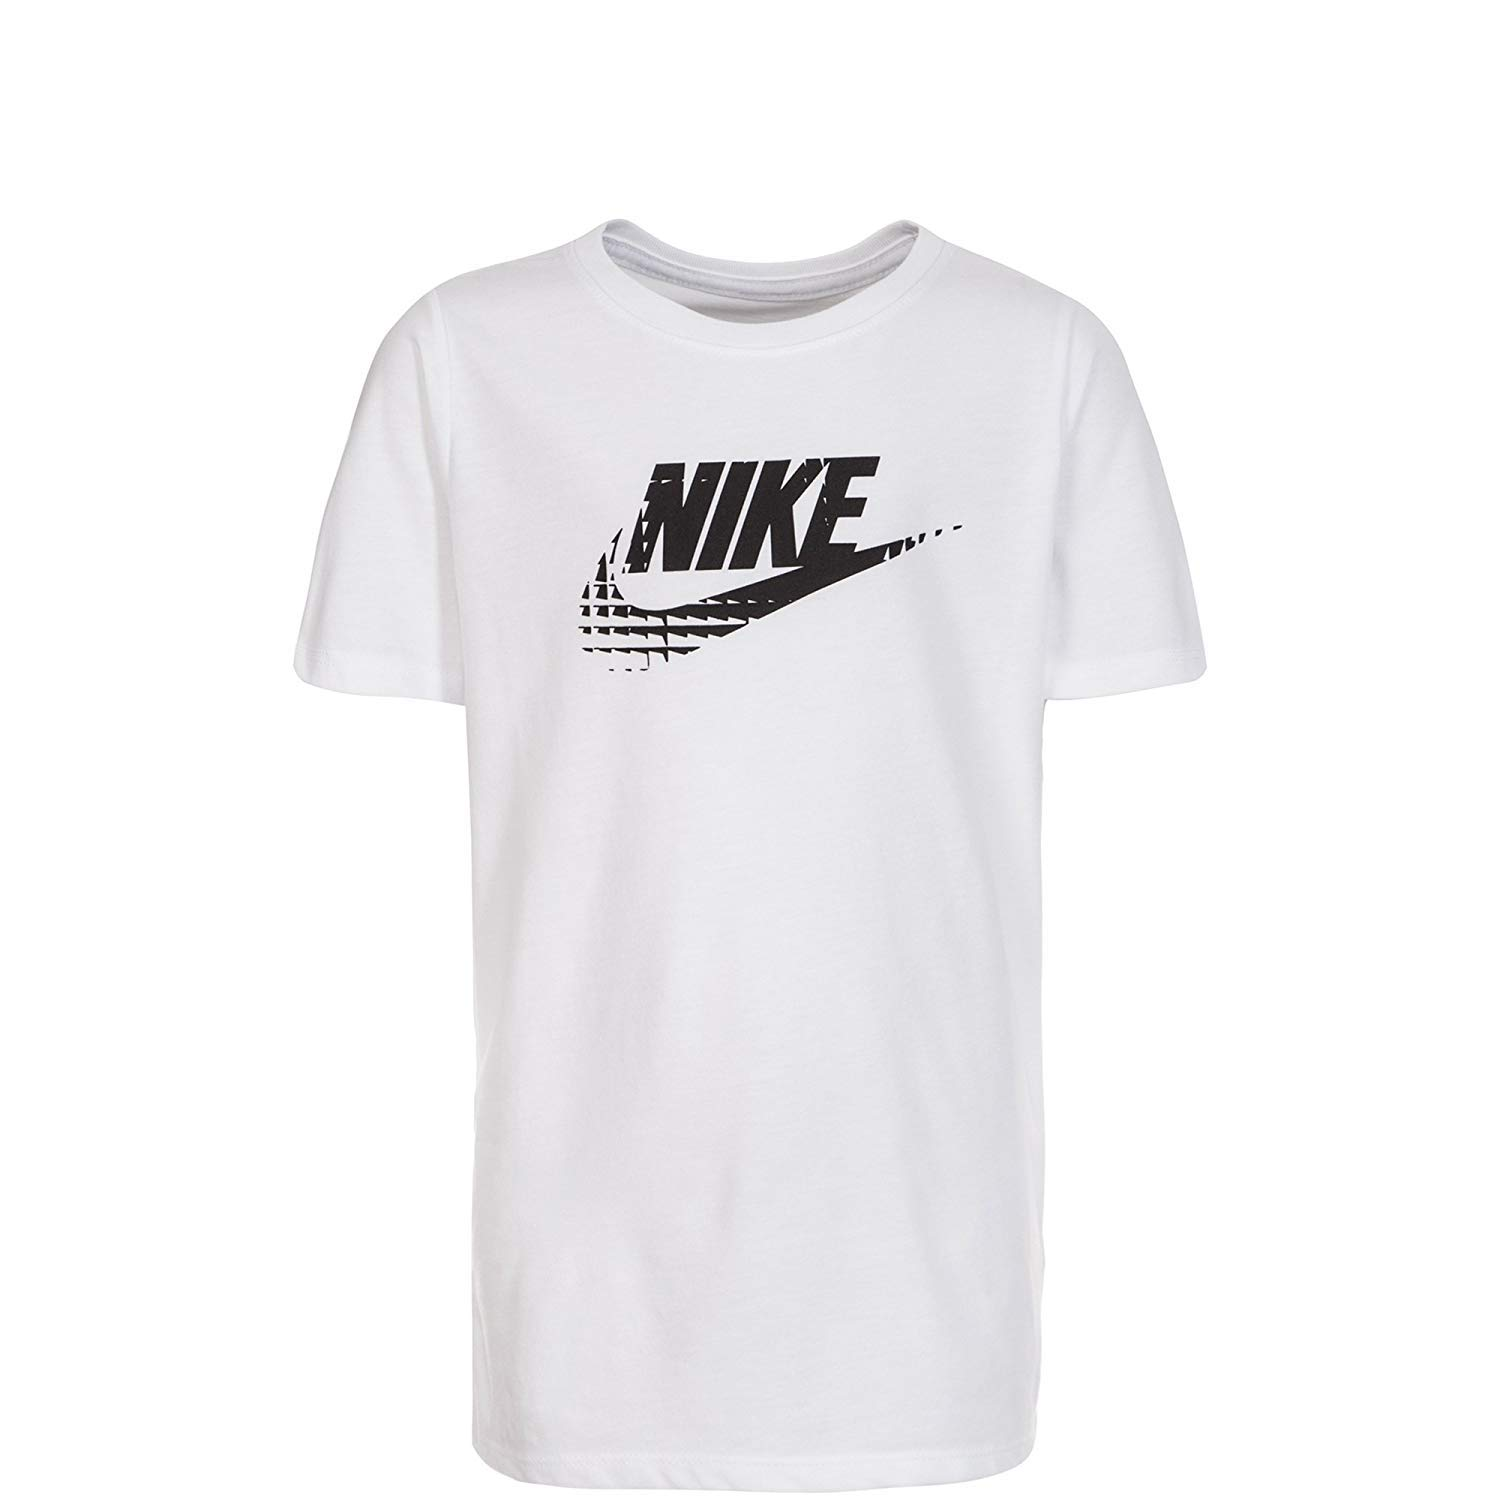 46712dd1 Amazon.com: NIKE Kids' Sportswear Futura T-Shirt: Sports & Outdoors